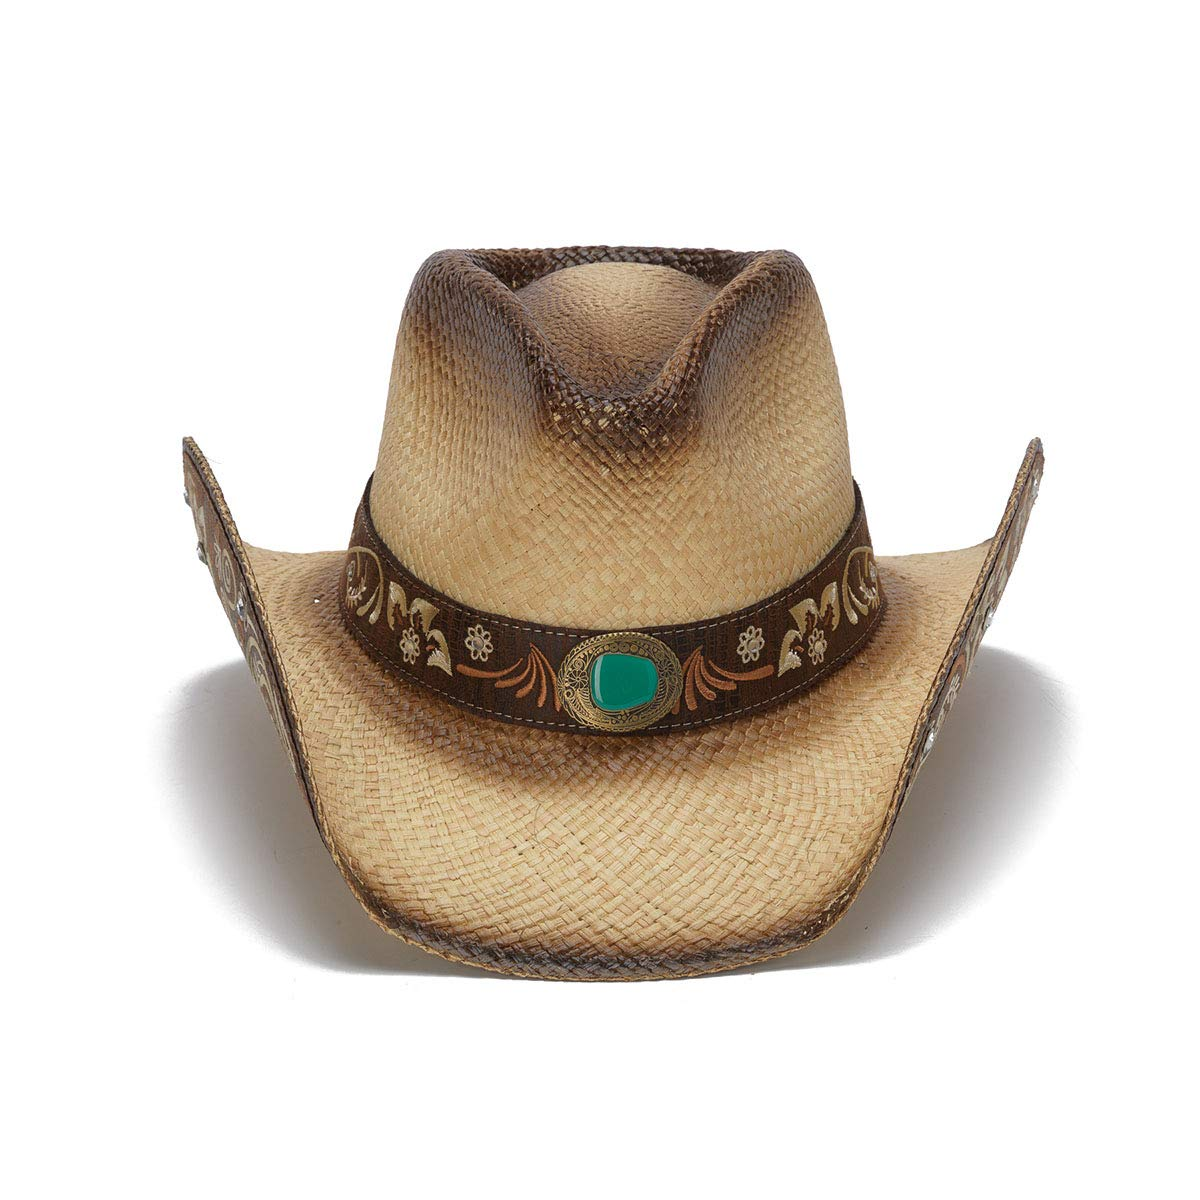 Stampede Hats Women's Sky Action Floral Embroidered Western Hat S Tea Stain by Stampede Hats (Image #2)